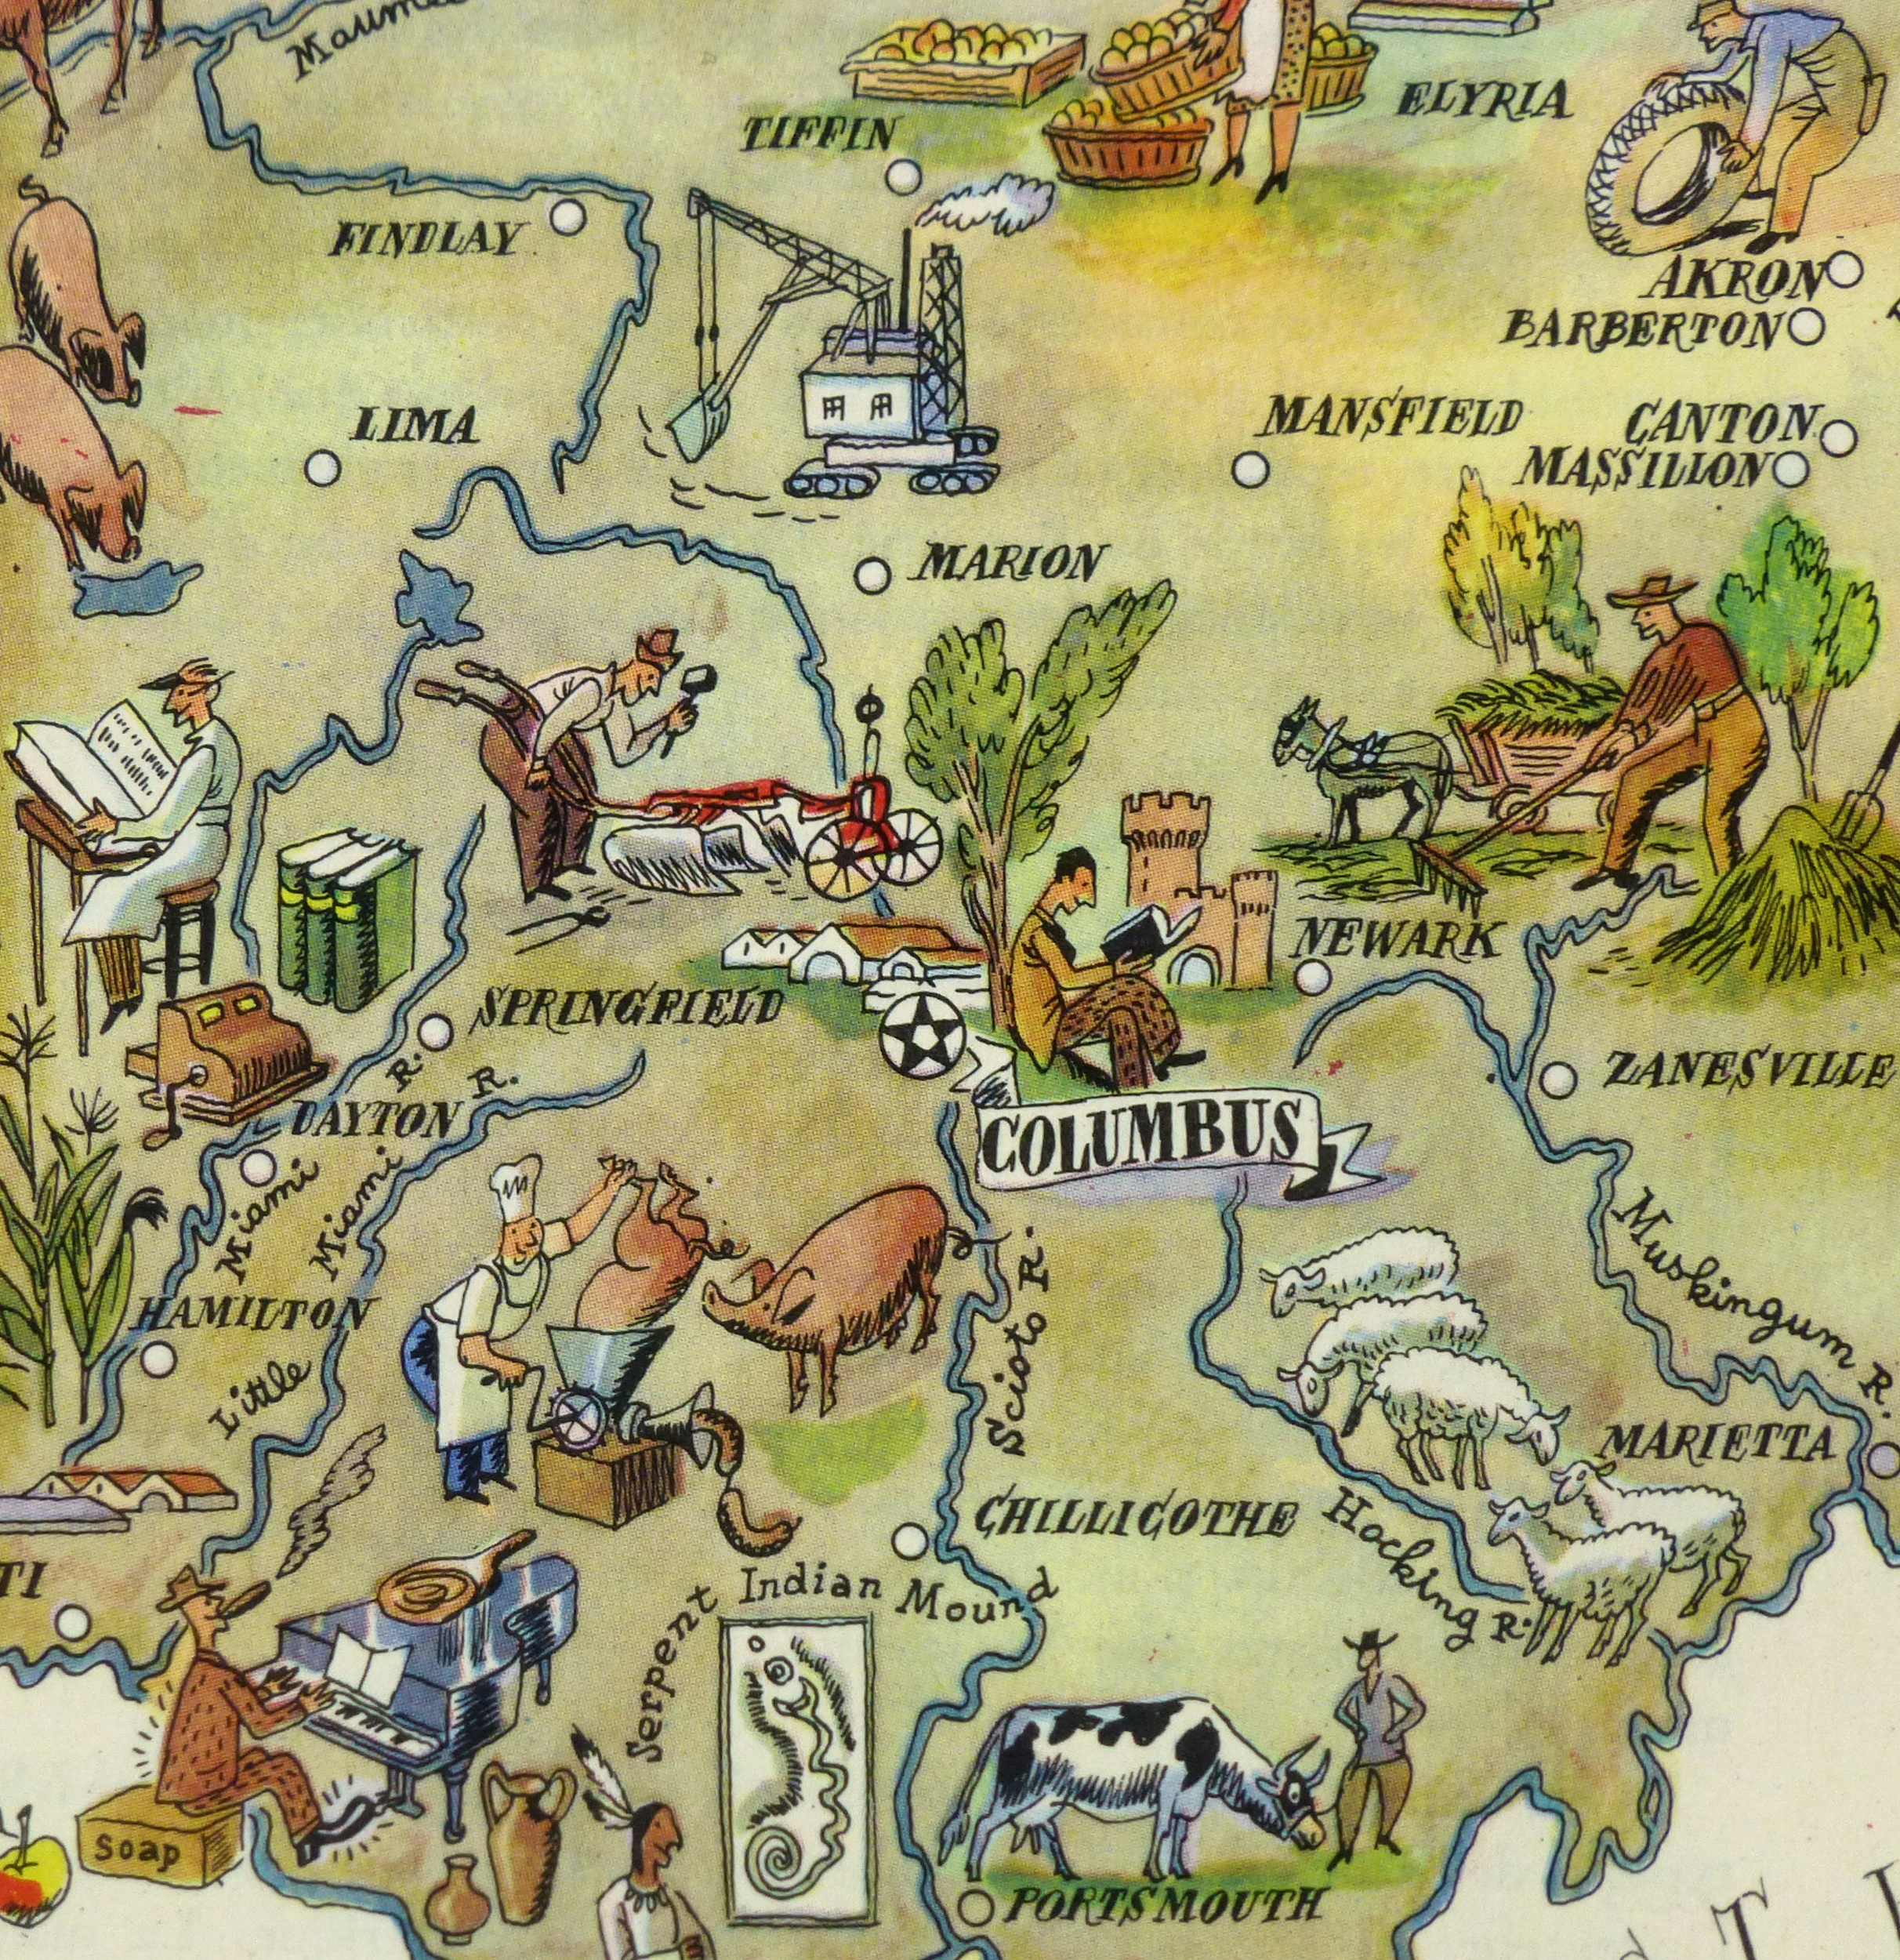 Ohio Pictorial Map, 1946-detail-6280K